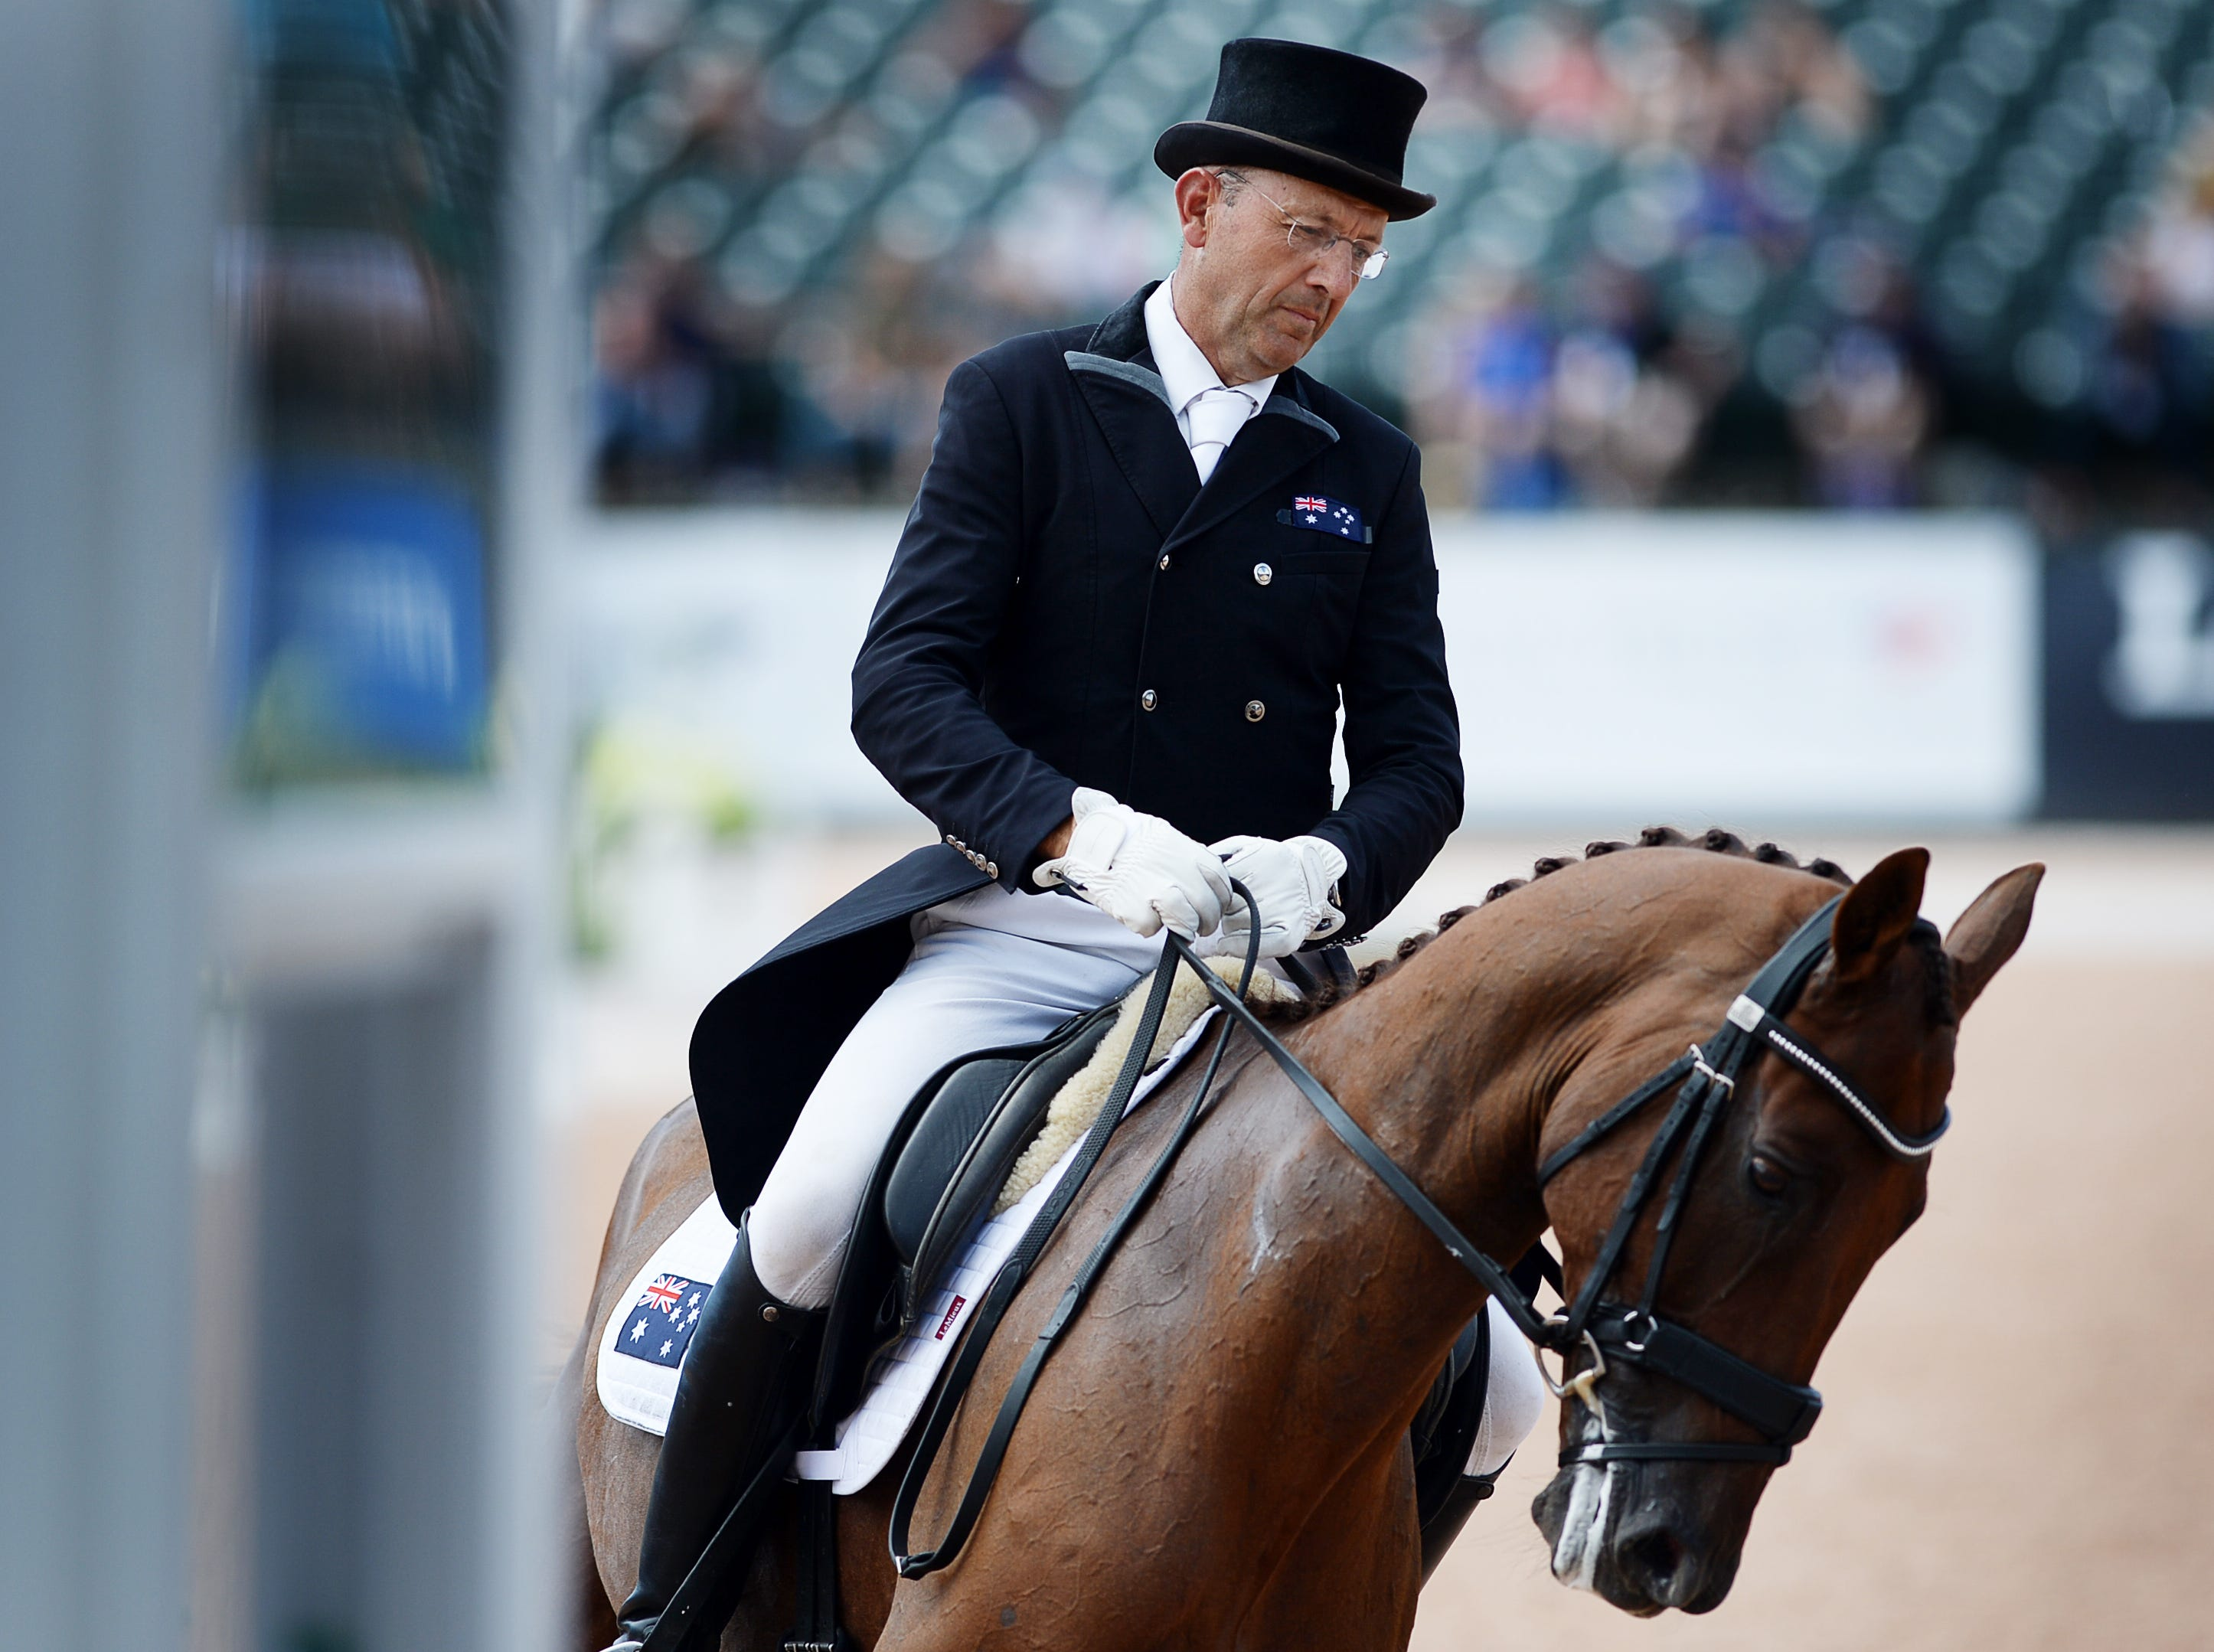 Australia's William Levett rides Lassban Diamond Lift in the dressage portion of the eventing competition at the World Equestrian Games in Tryon Sept. 14, 2018.